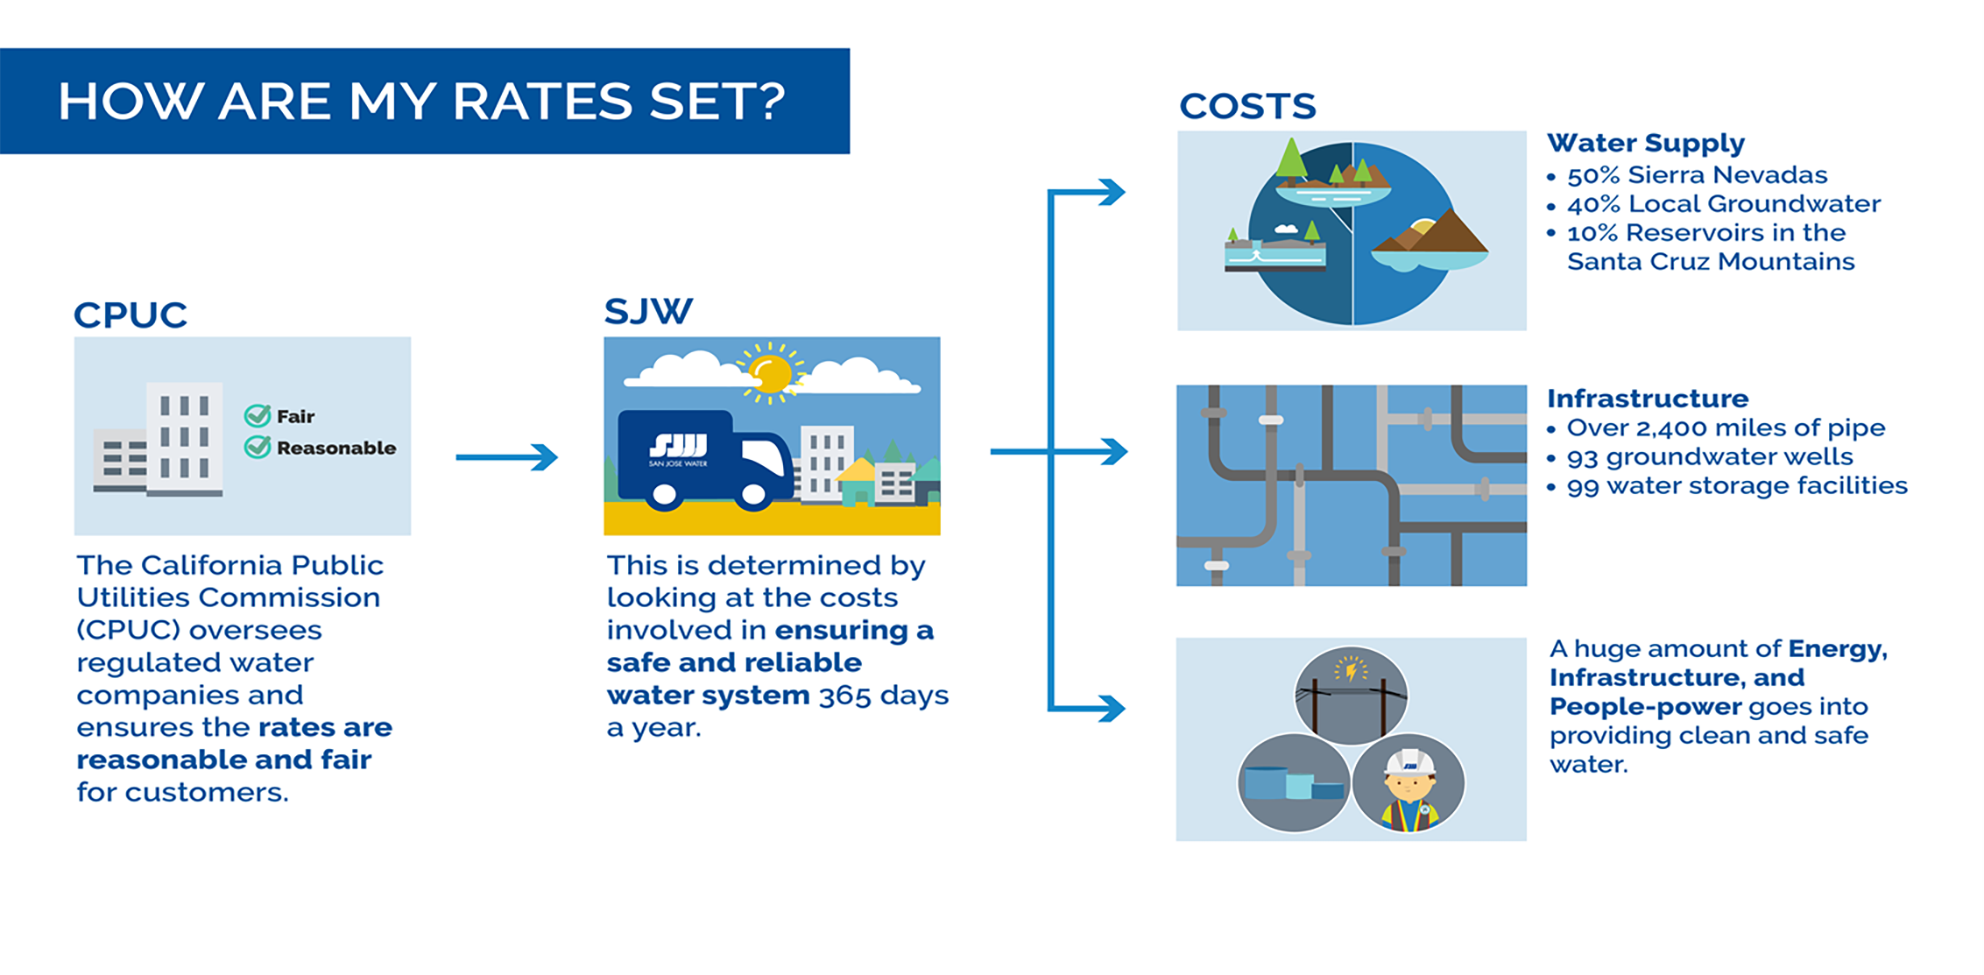 How are my rates set? The California Public Utilities Commission (CPUC) oversees regulated water companies. This is determined by looking at the costs involved in ensuring safe and reliable water system. Cost involved water supply, infrastructure and overhead.